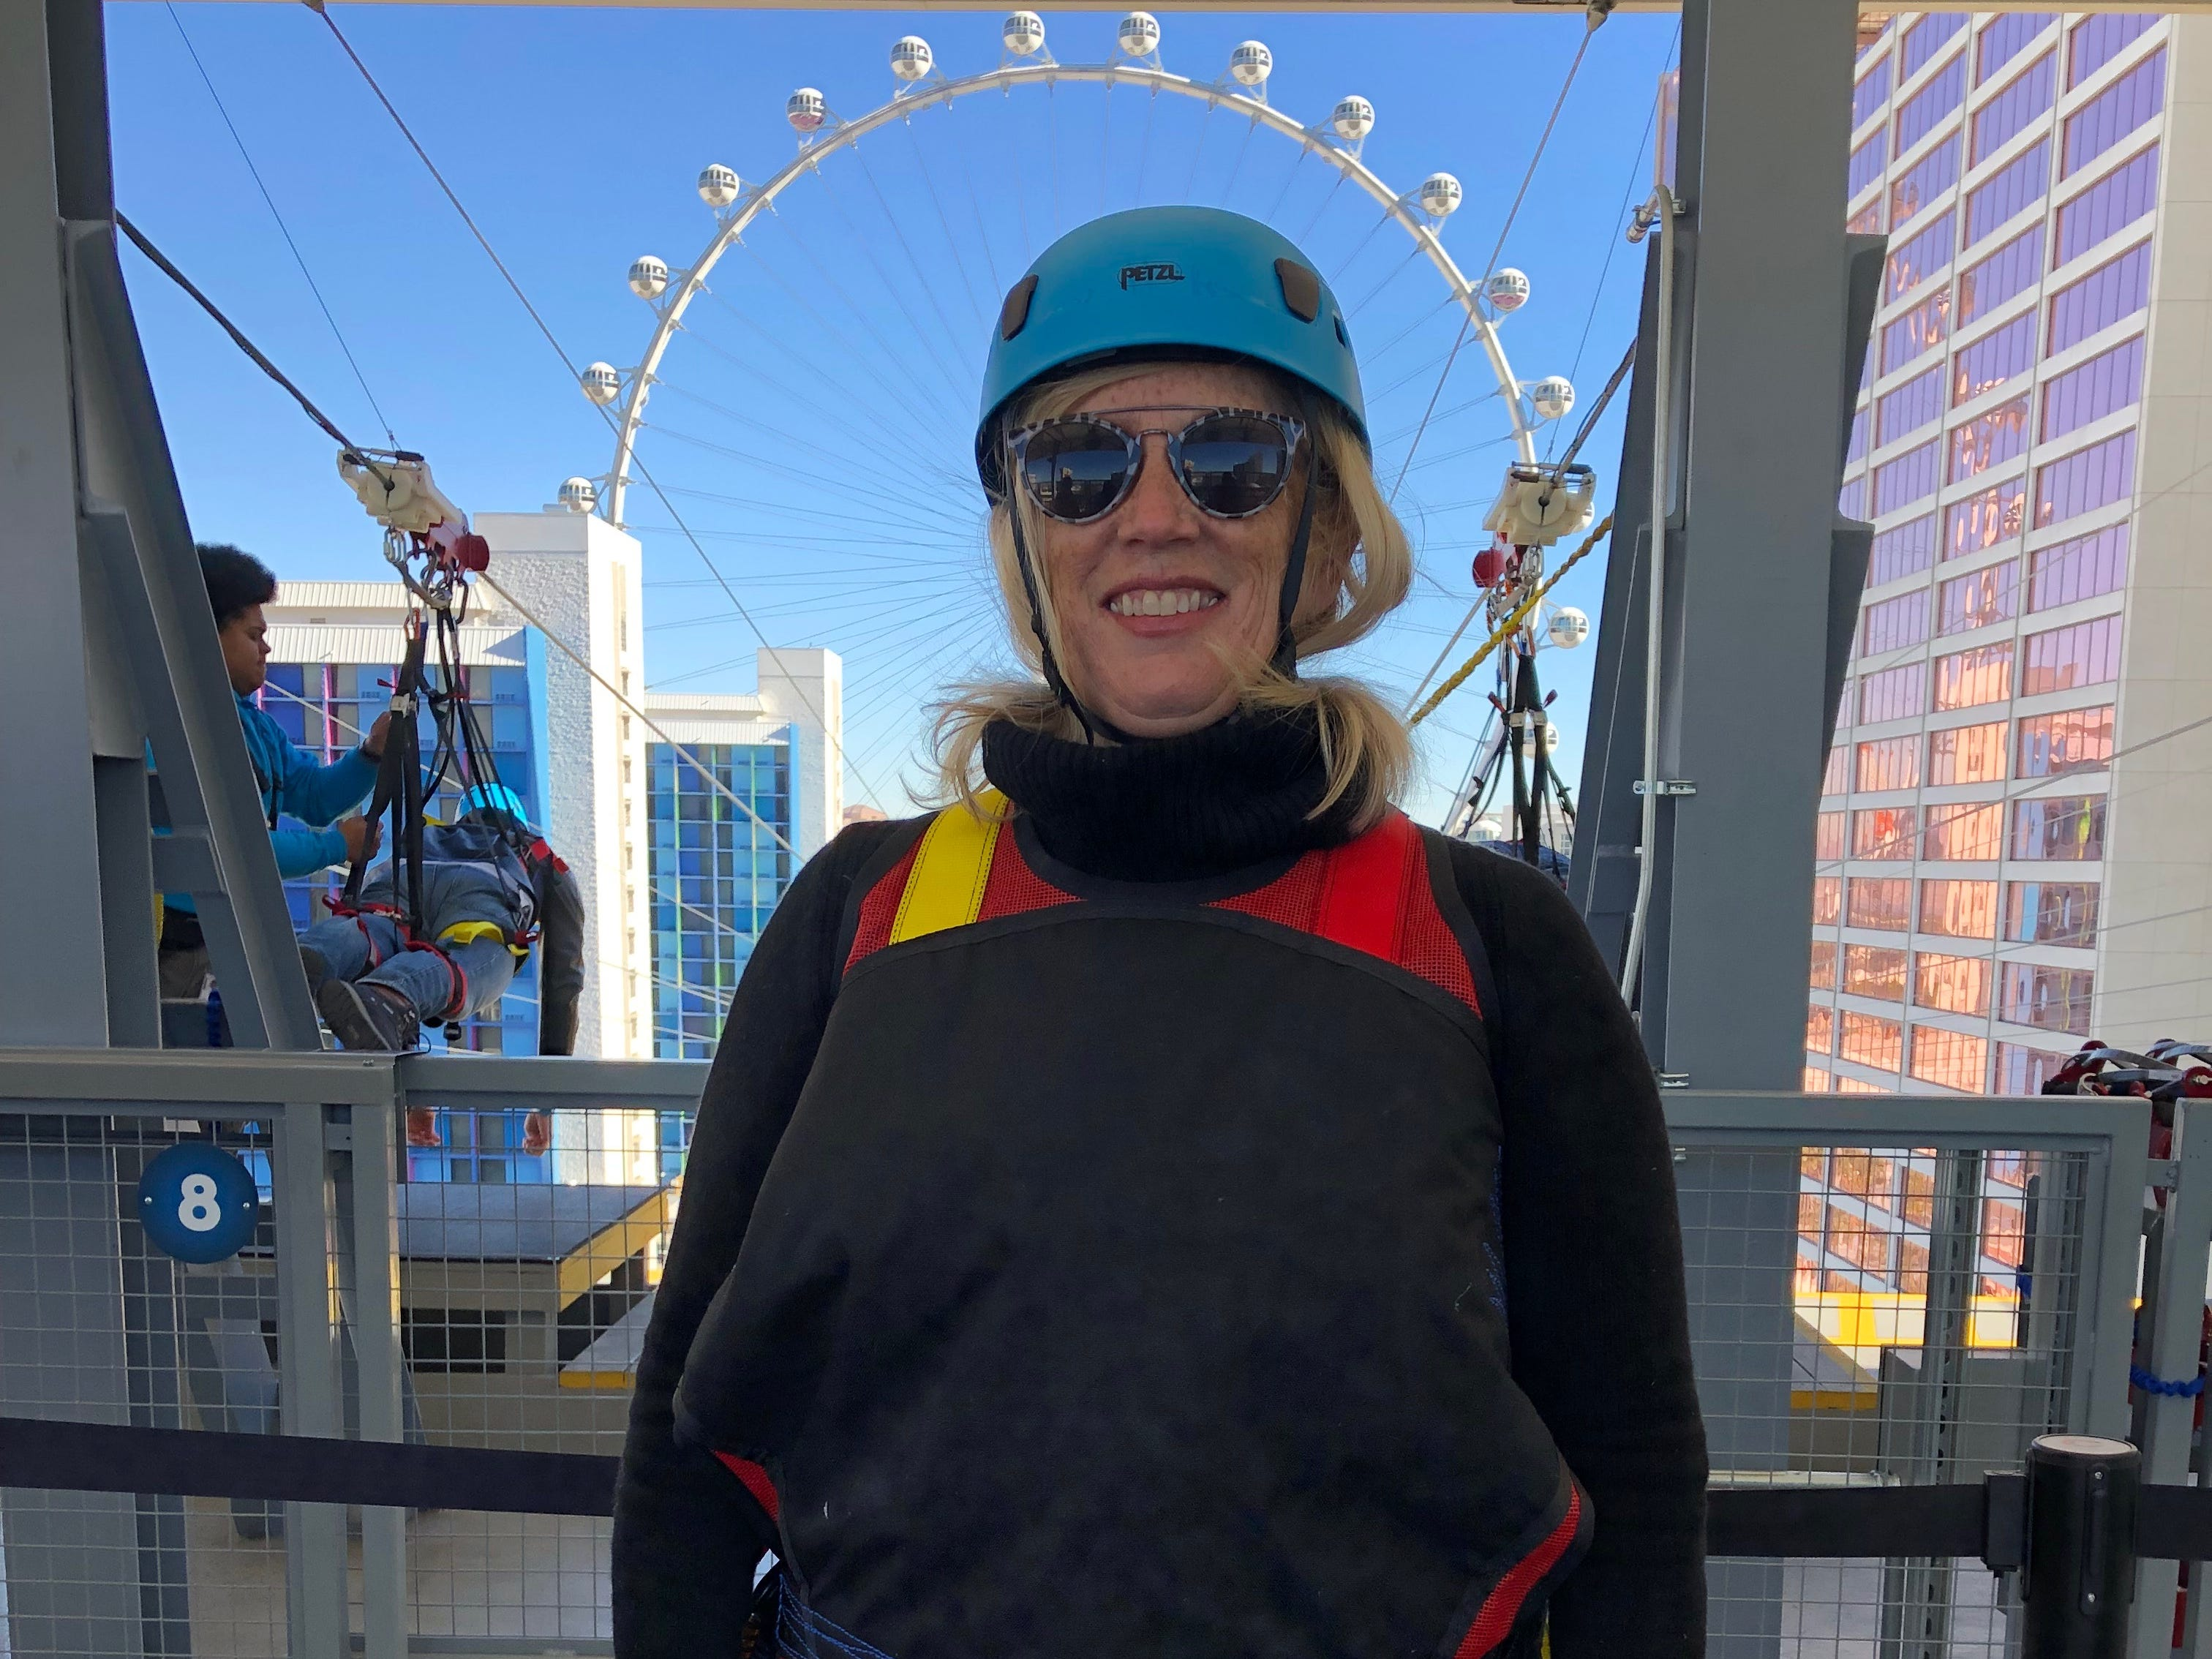 USA TODAY travel reporter Dawn Gilbertson ready to ride the new Fly Linq zipline on the Las Vegas Strip.